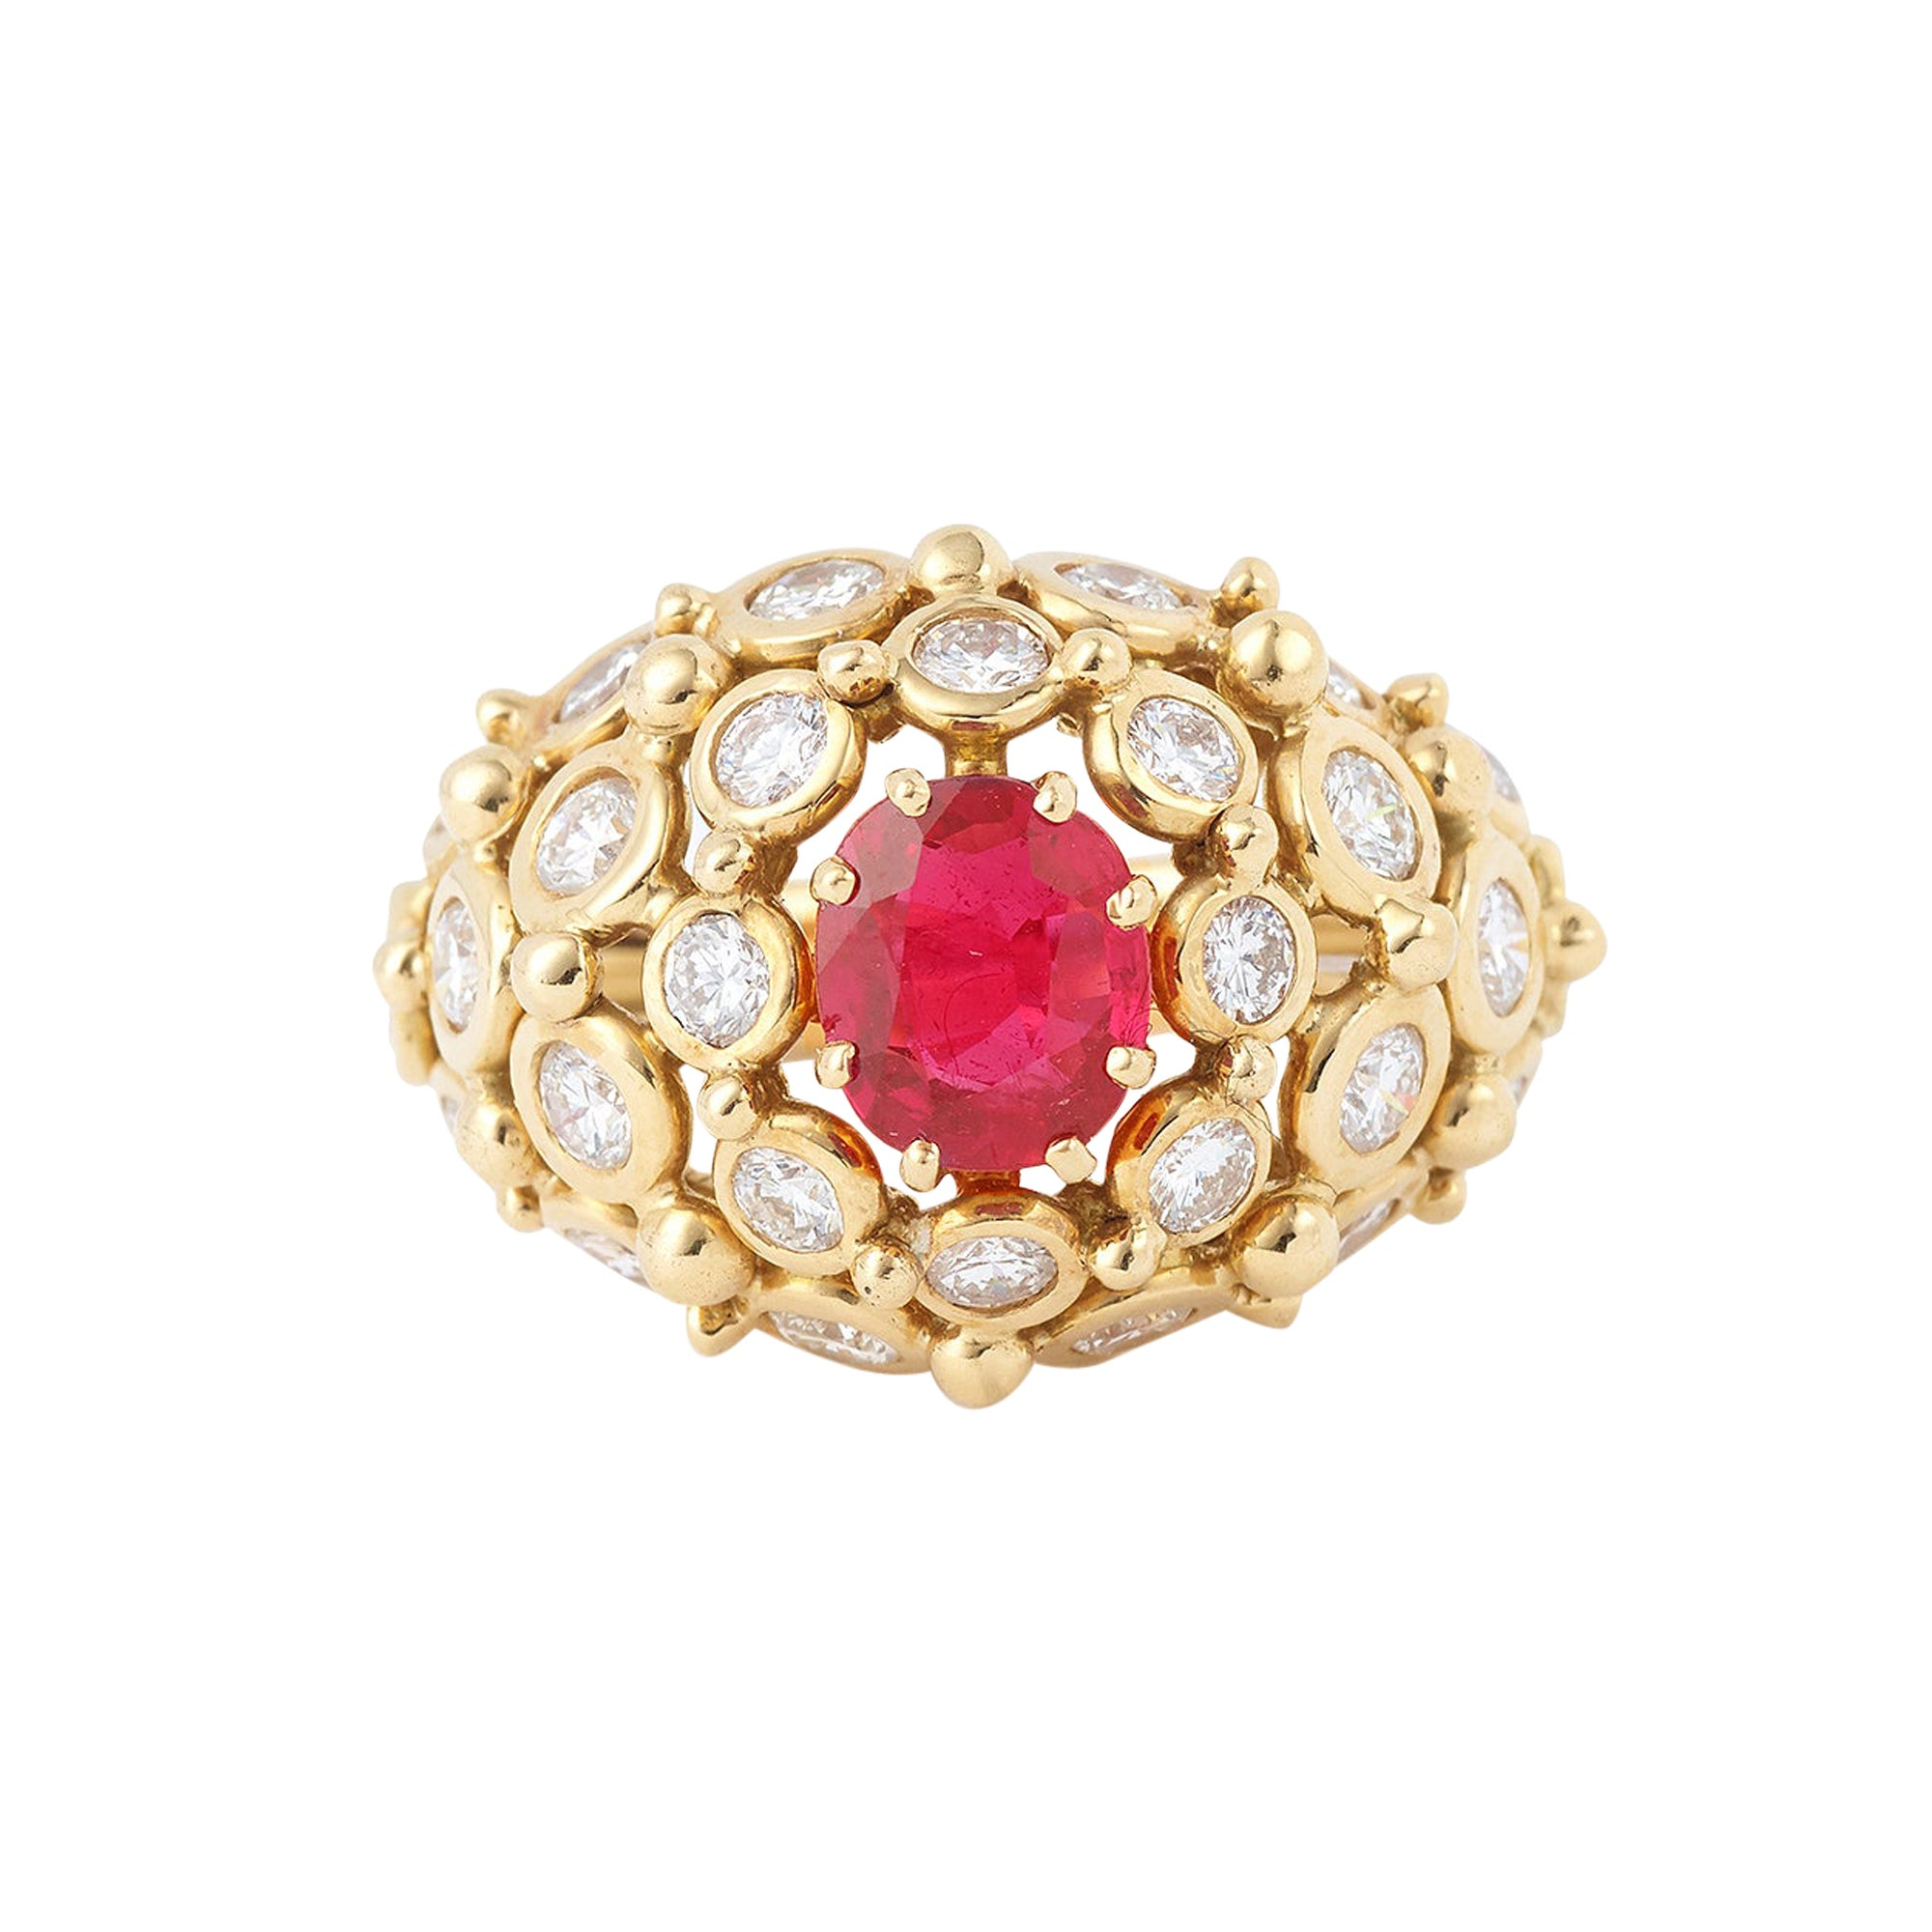 Dome 1 carat Ruby and Diamonds 18 Carat Yellow Gold Ring